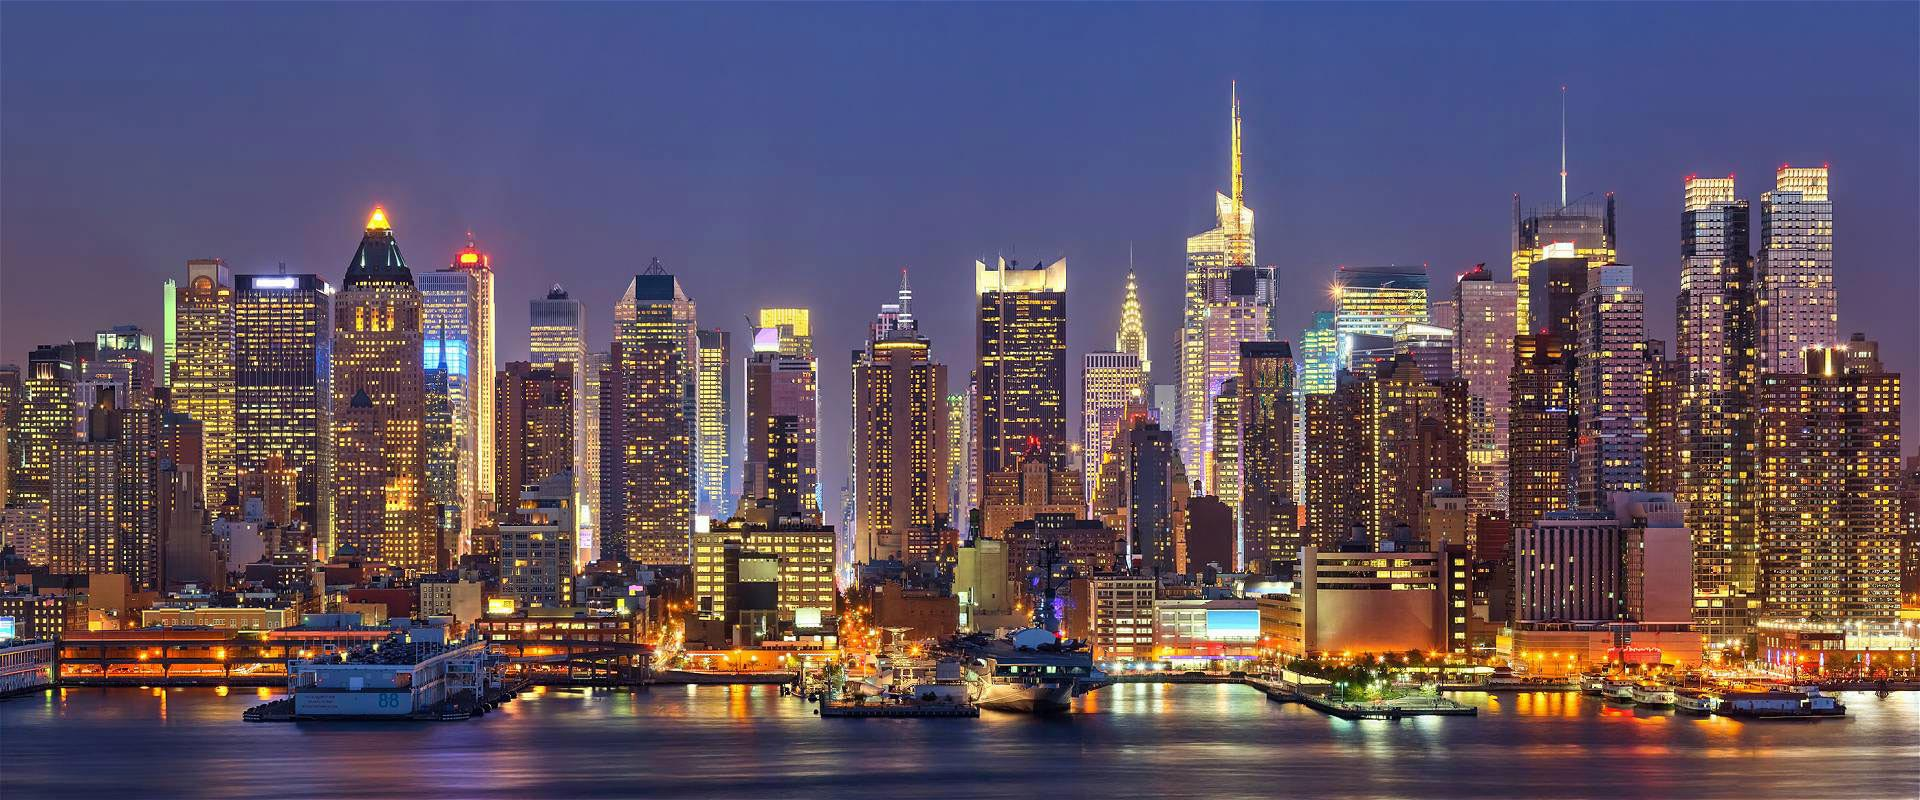 New York la nuit